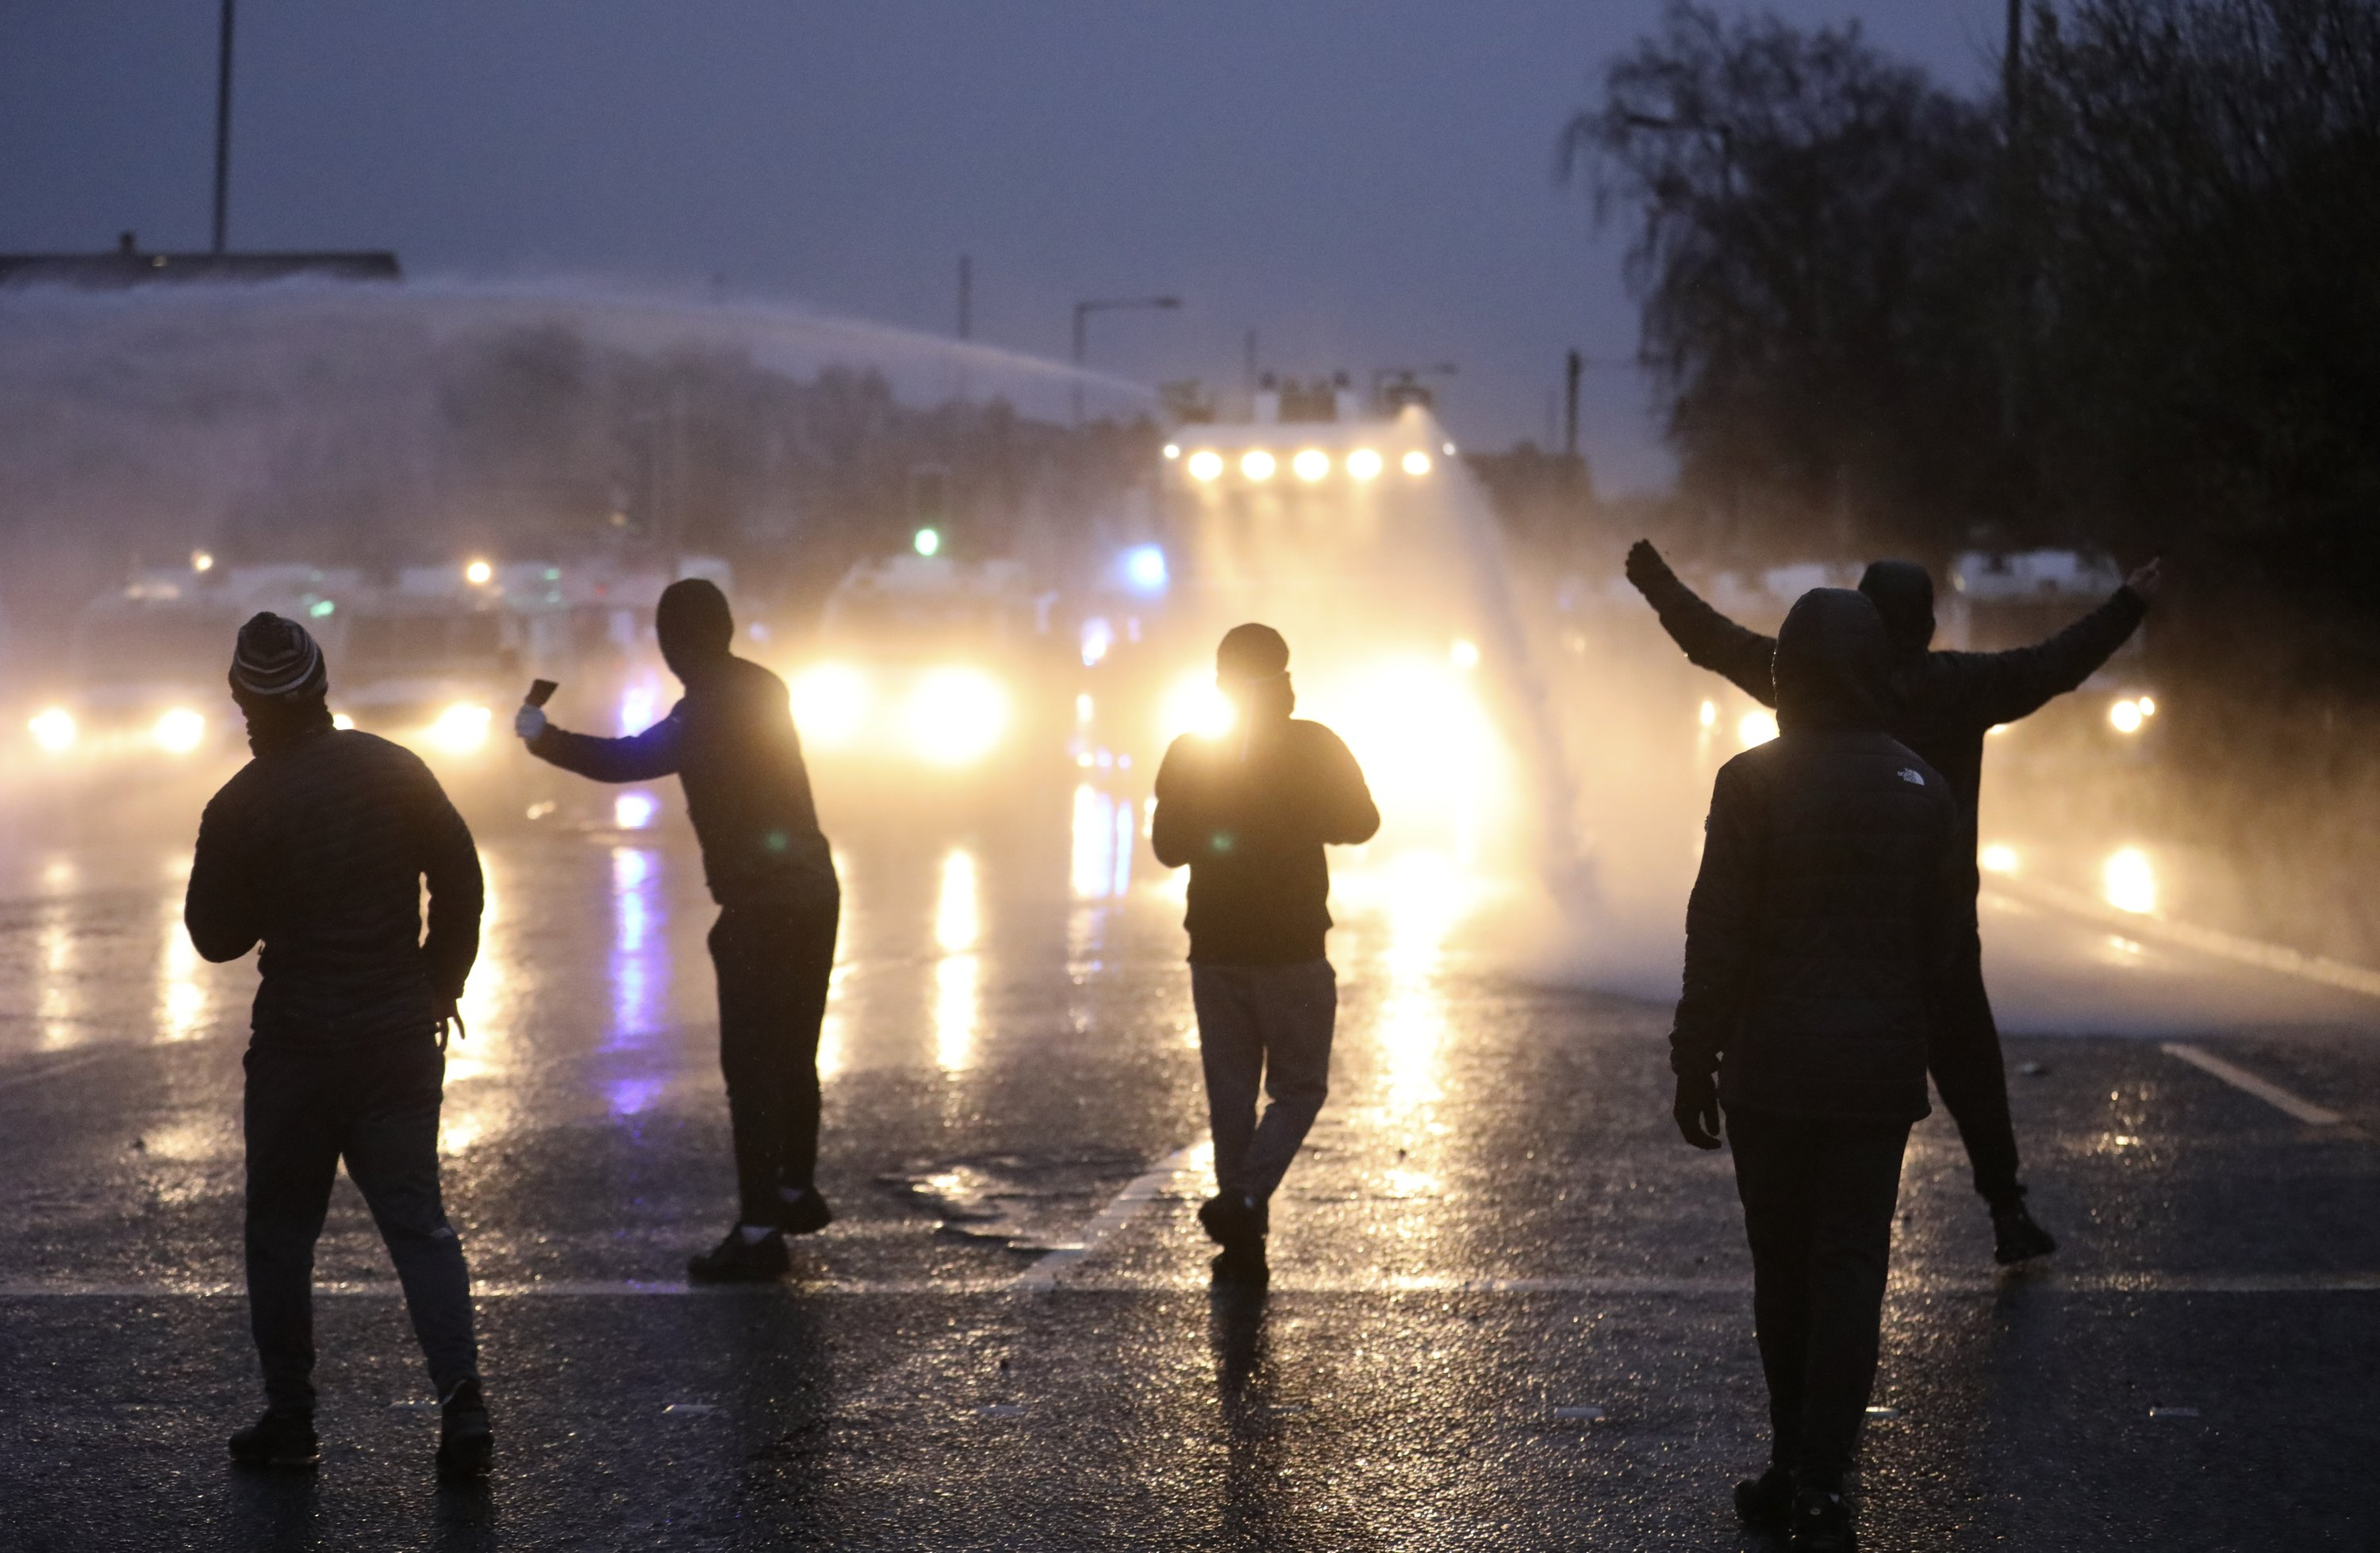 Protesters ignore calls for calm as violence escalates in Belfast